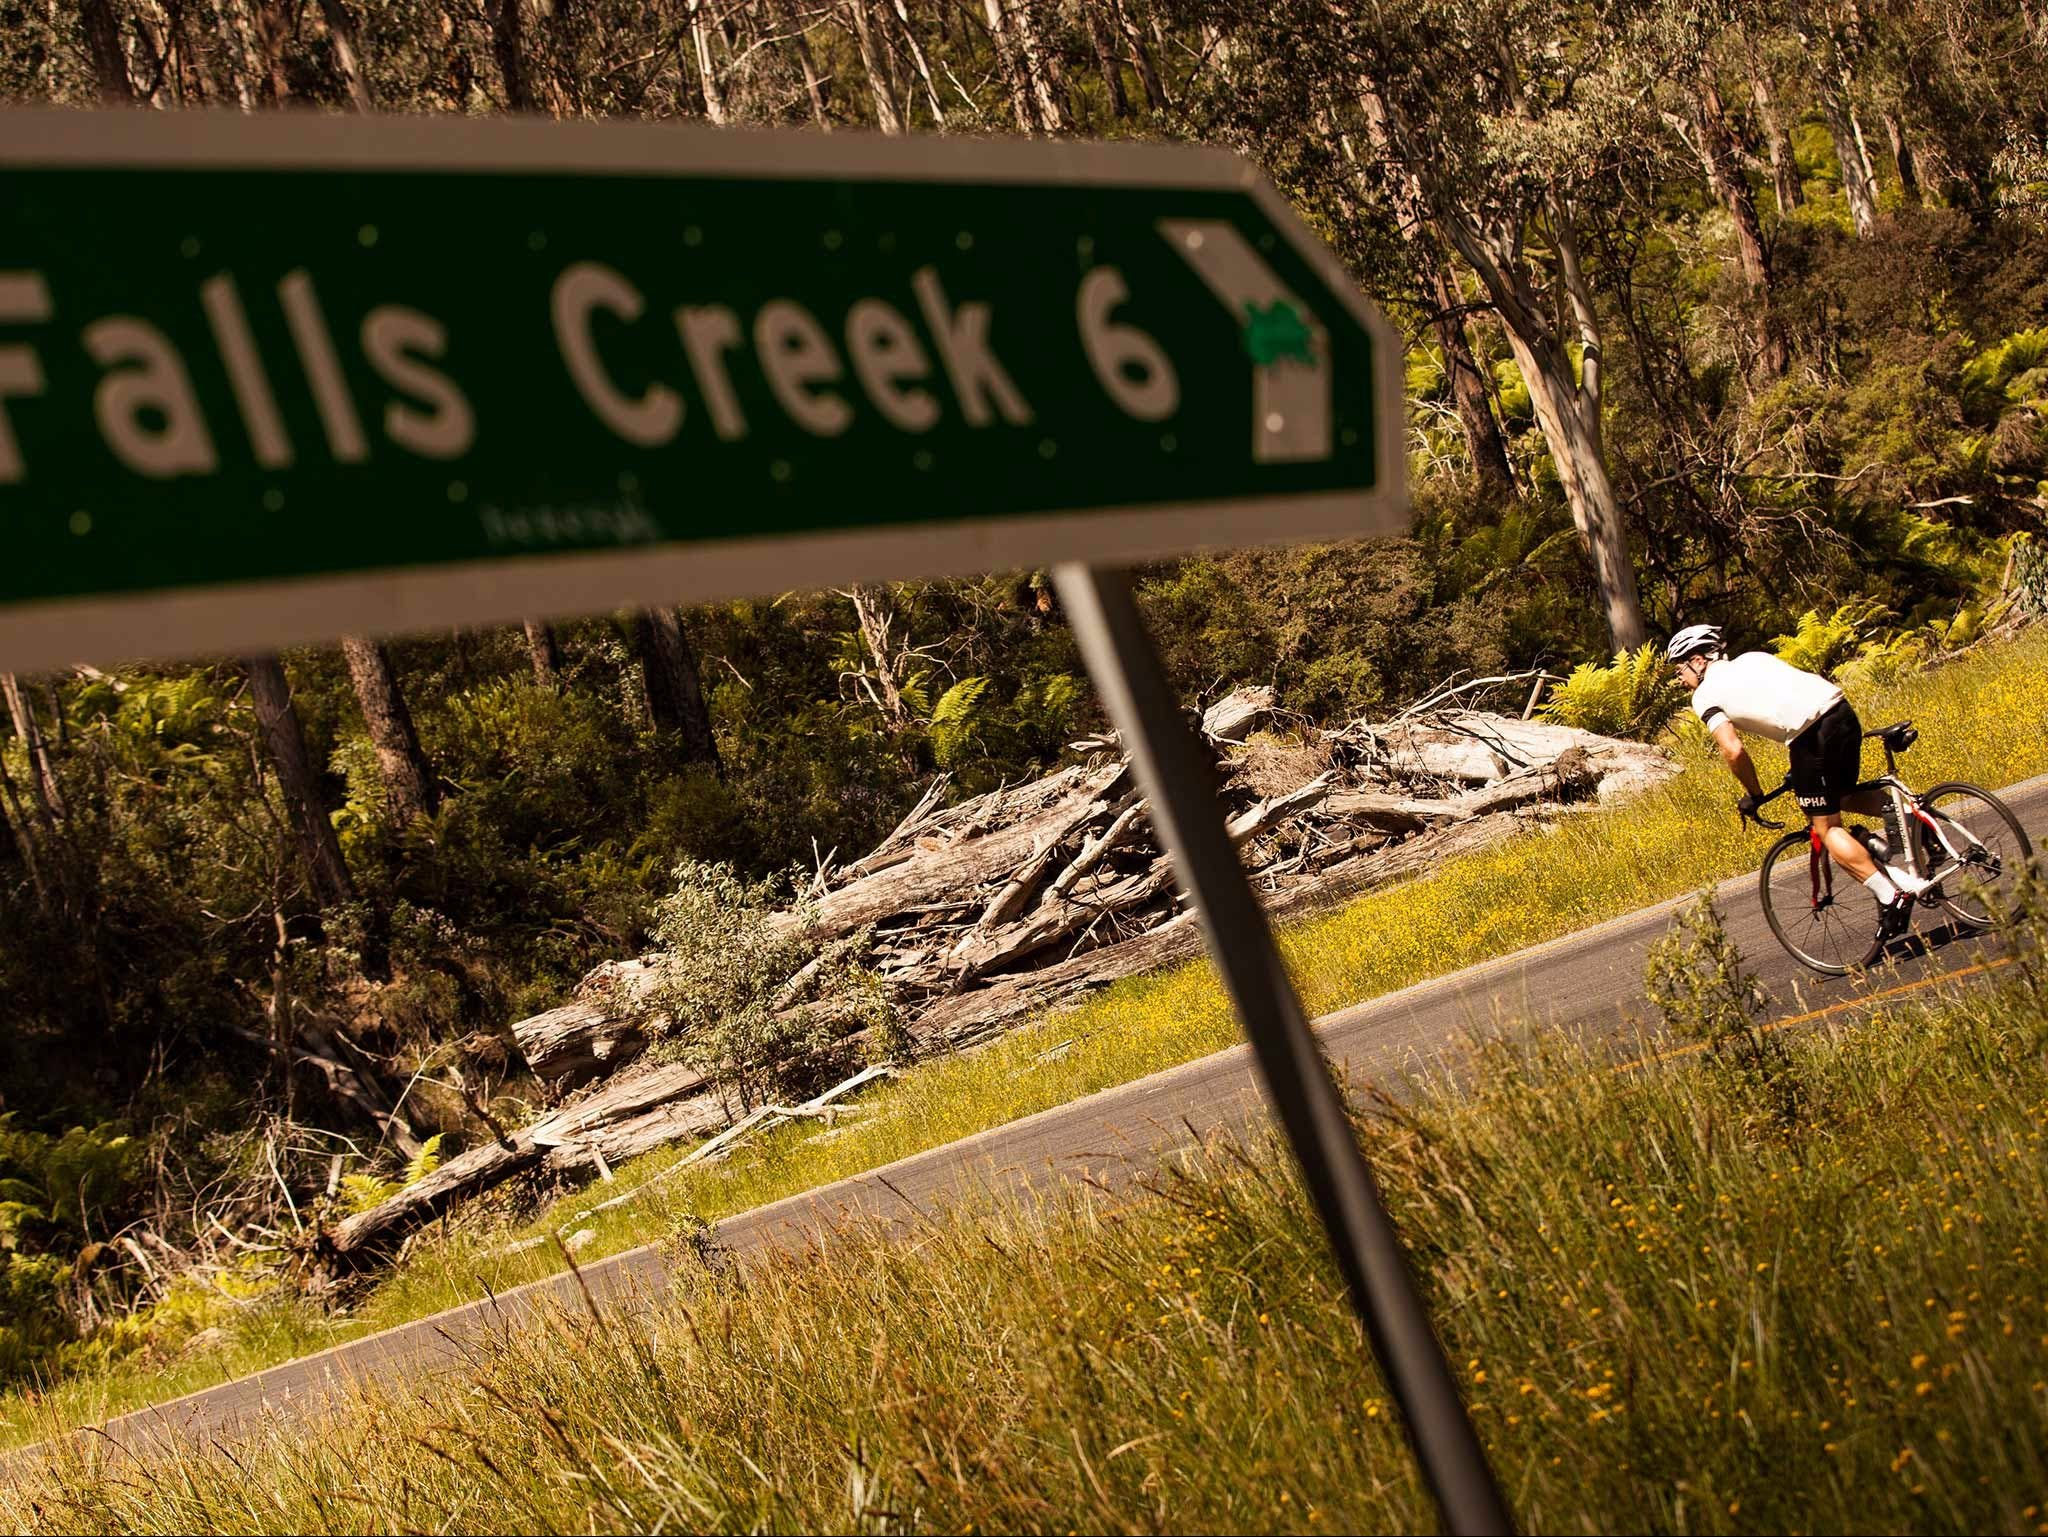 7 Peaks Ride - Falls Creek - Accommodation Directory